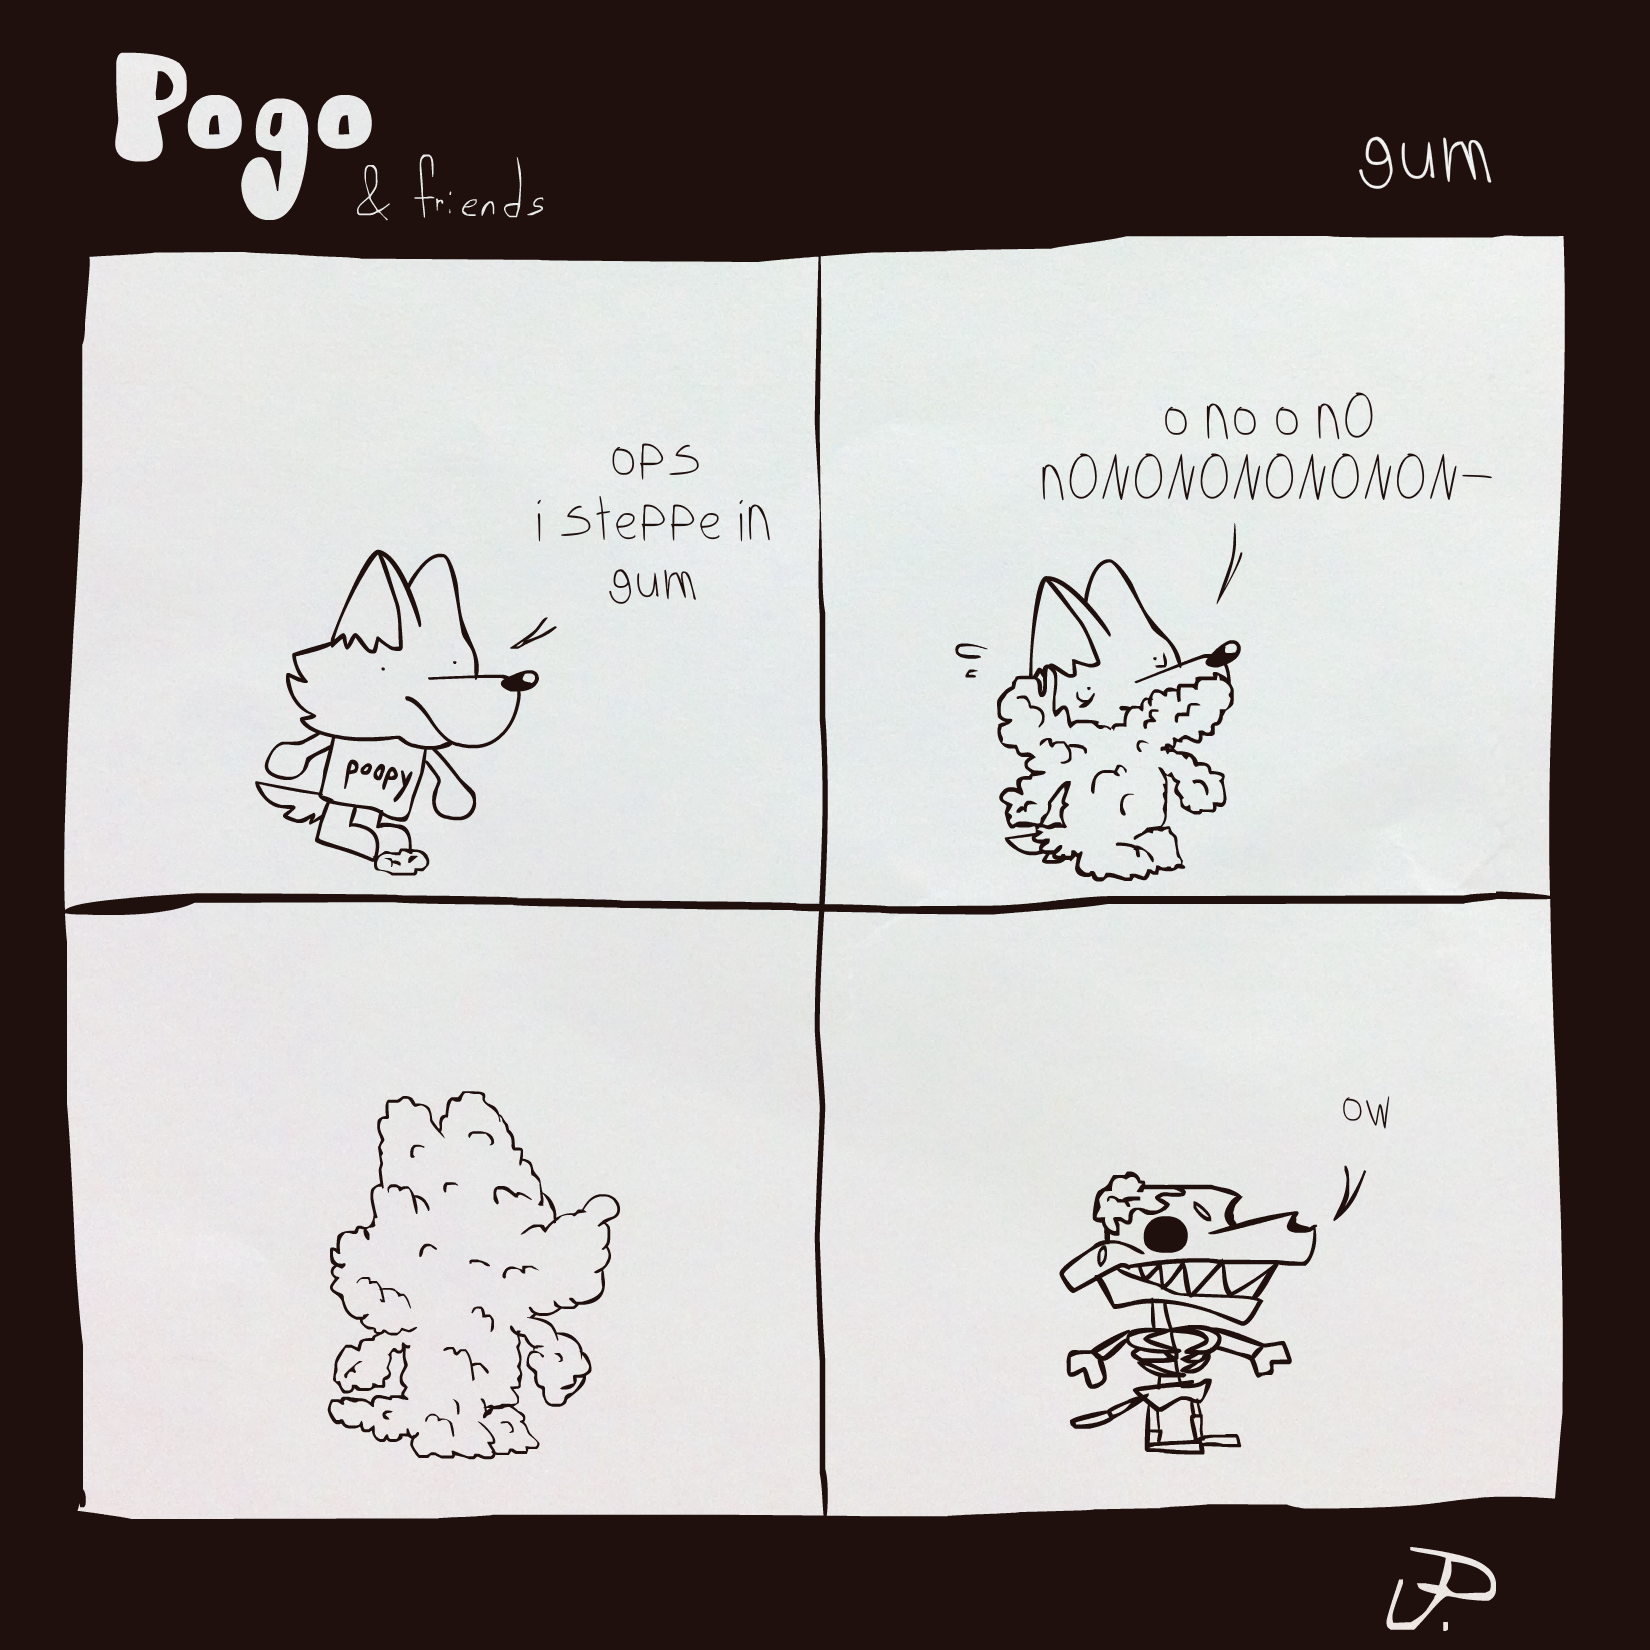 Pogo & Friends #4 - Gum